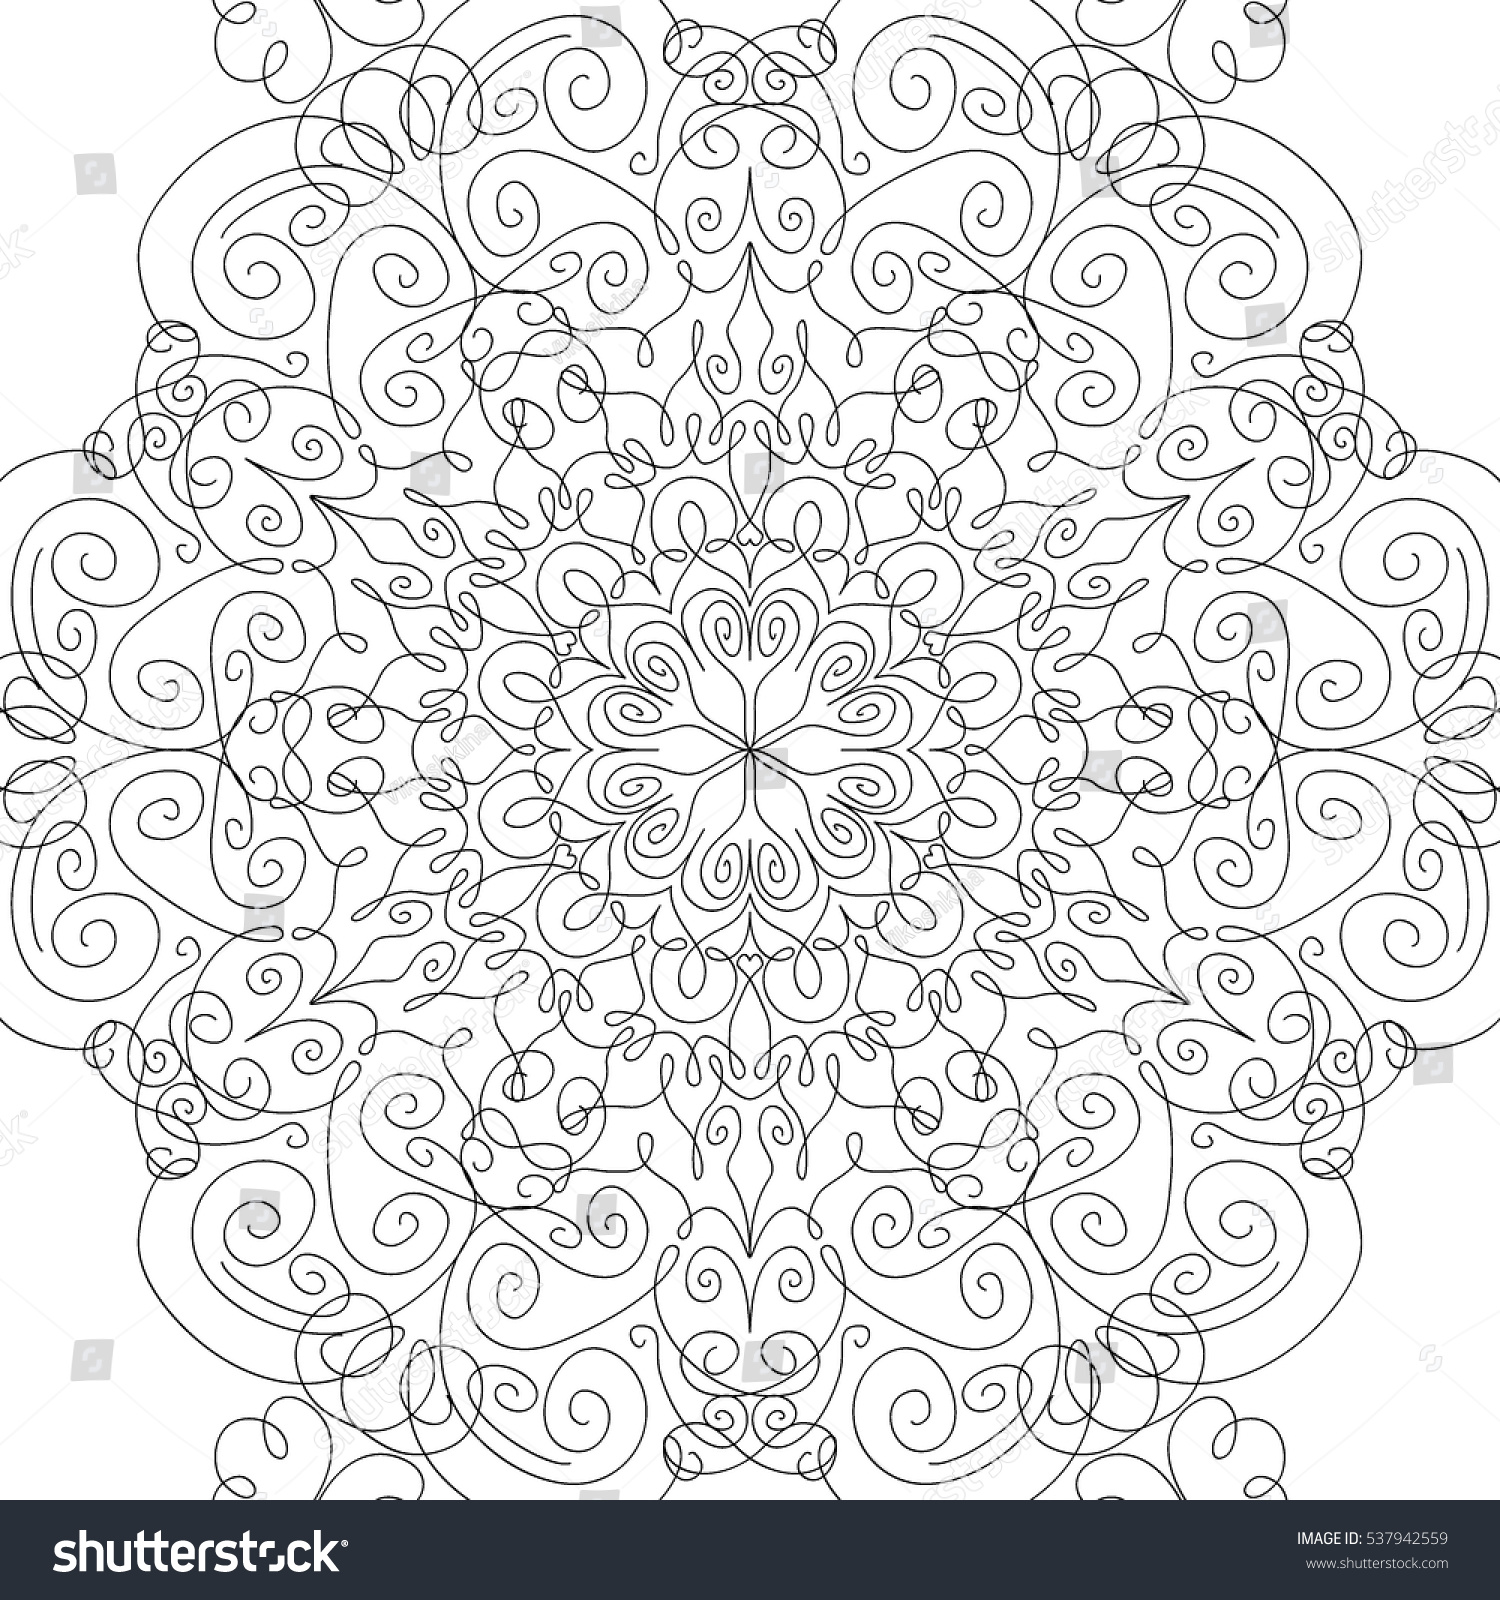 adult coloring book lacy seamless black and white pattern with calligraphic swirls for textile - Coloring Book Wallpaper